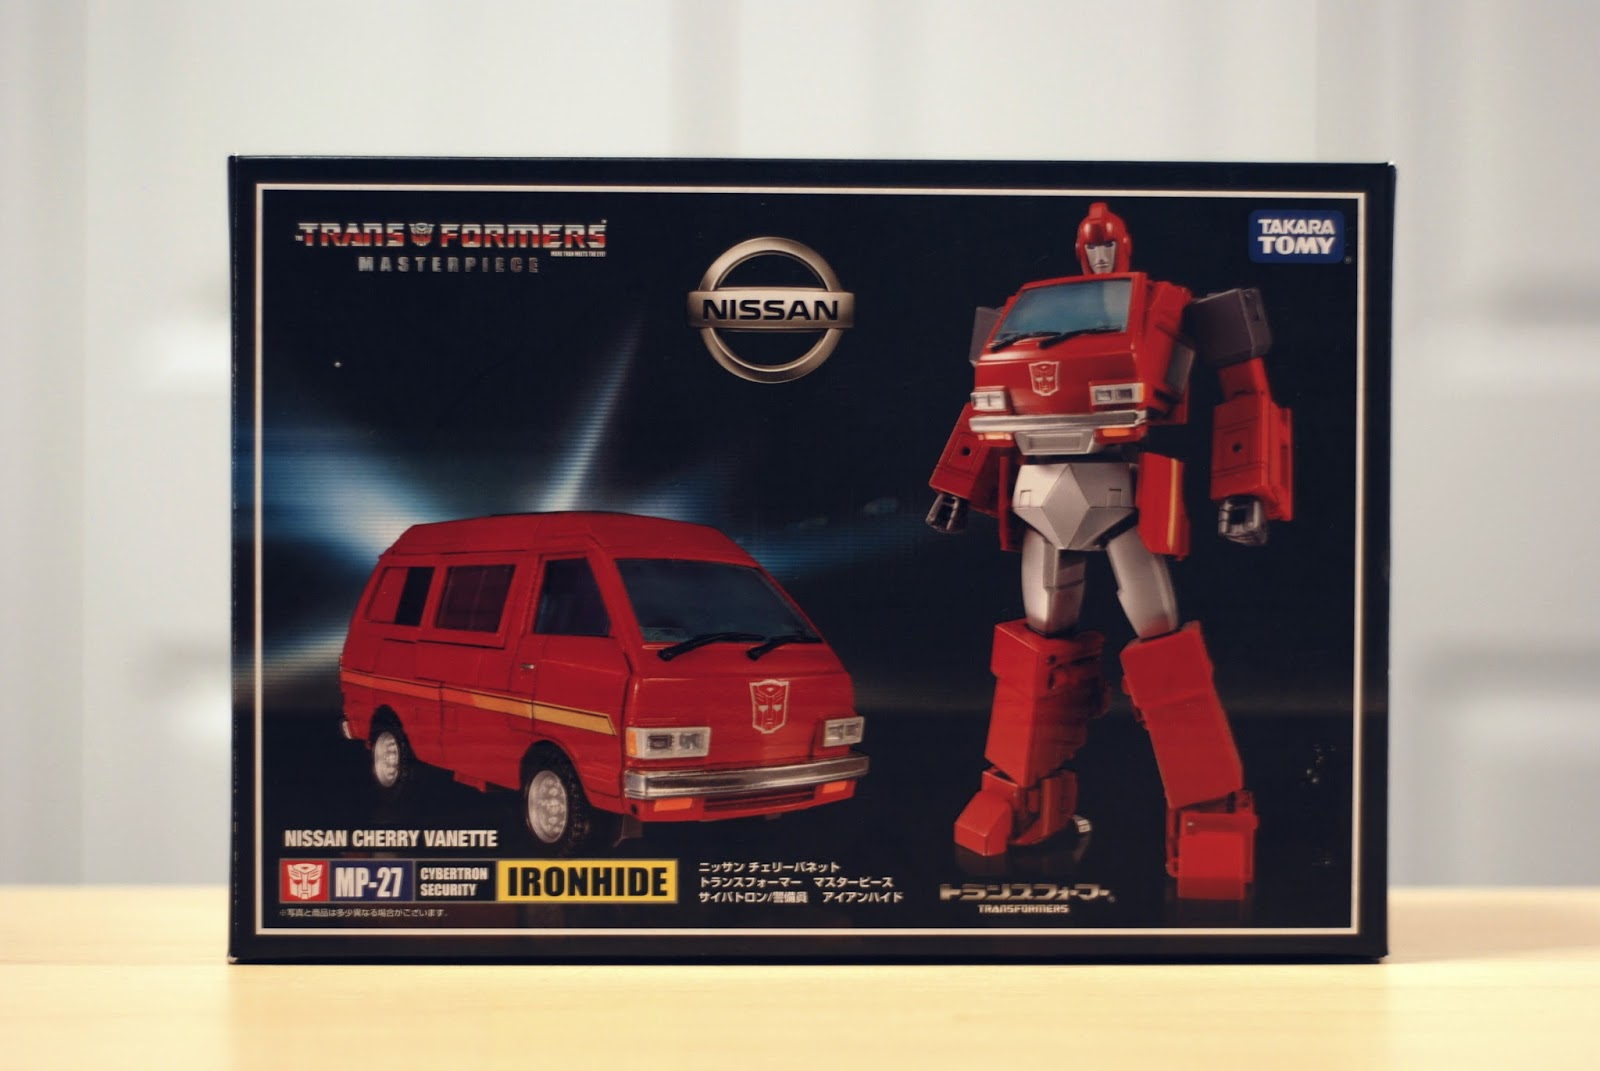 NOT HASBRO // TAKARA Masterpiece MP-27 Ironhide